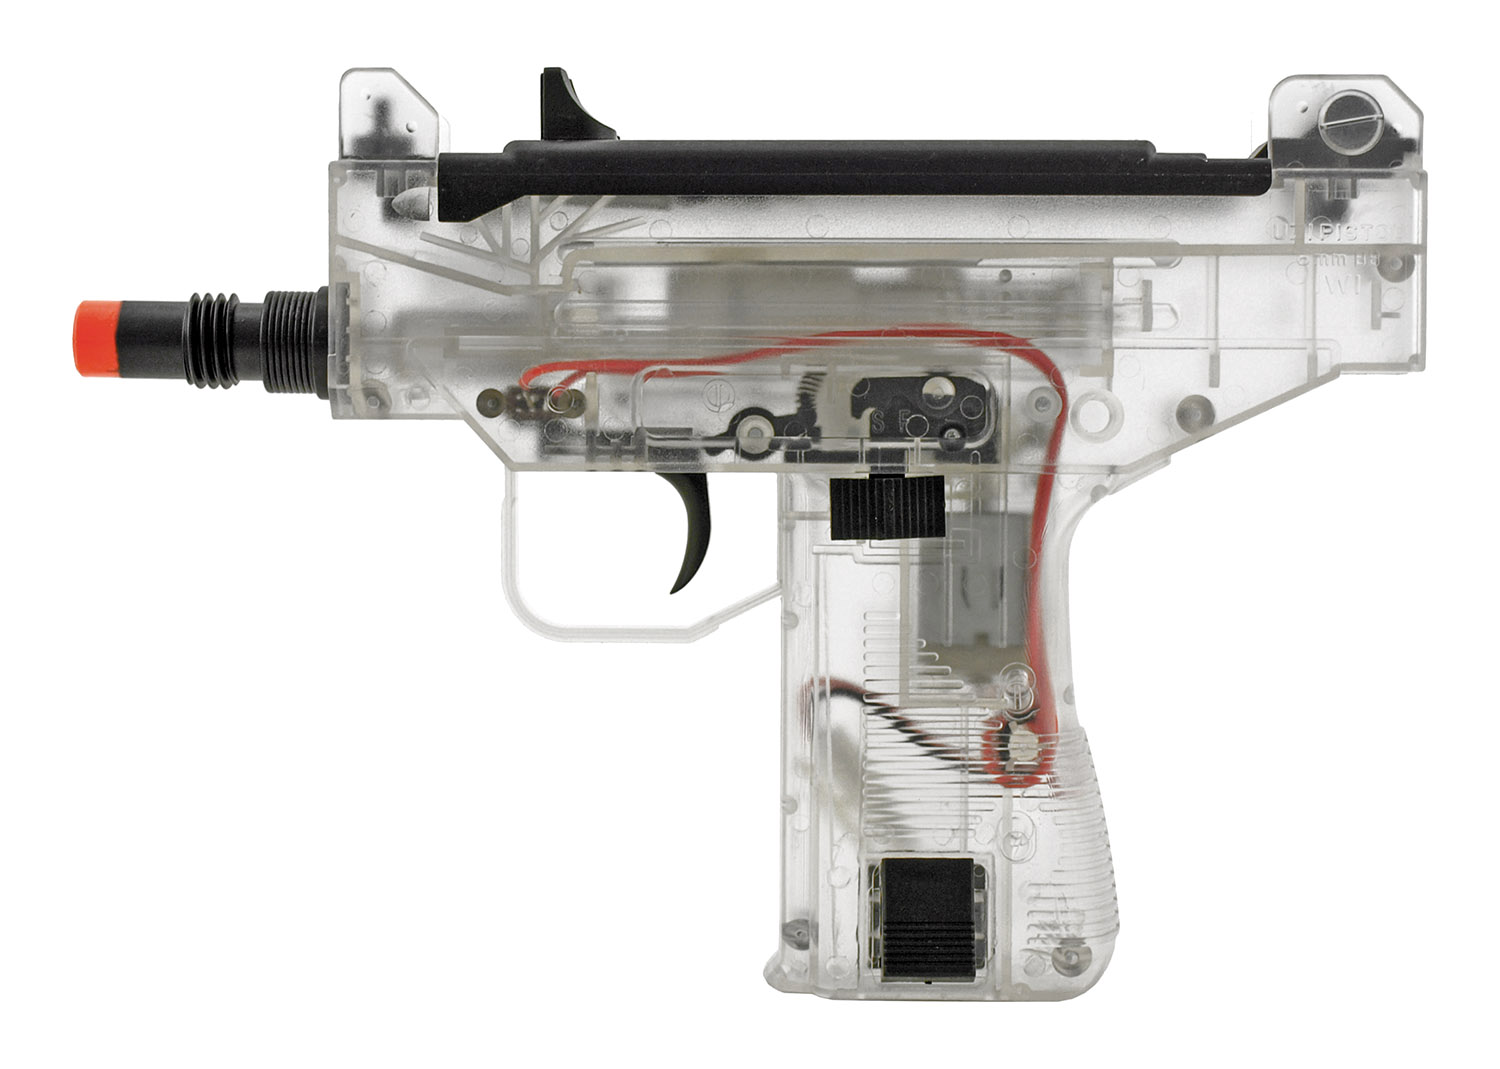 Umarex IWI Micro UZI Electric Powered Airsoft Sub Machine Gun AEG - Clear